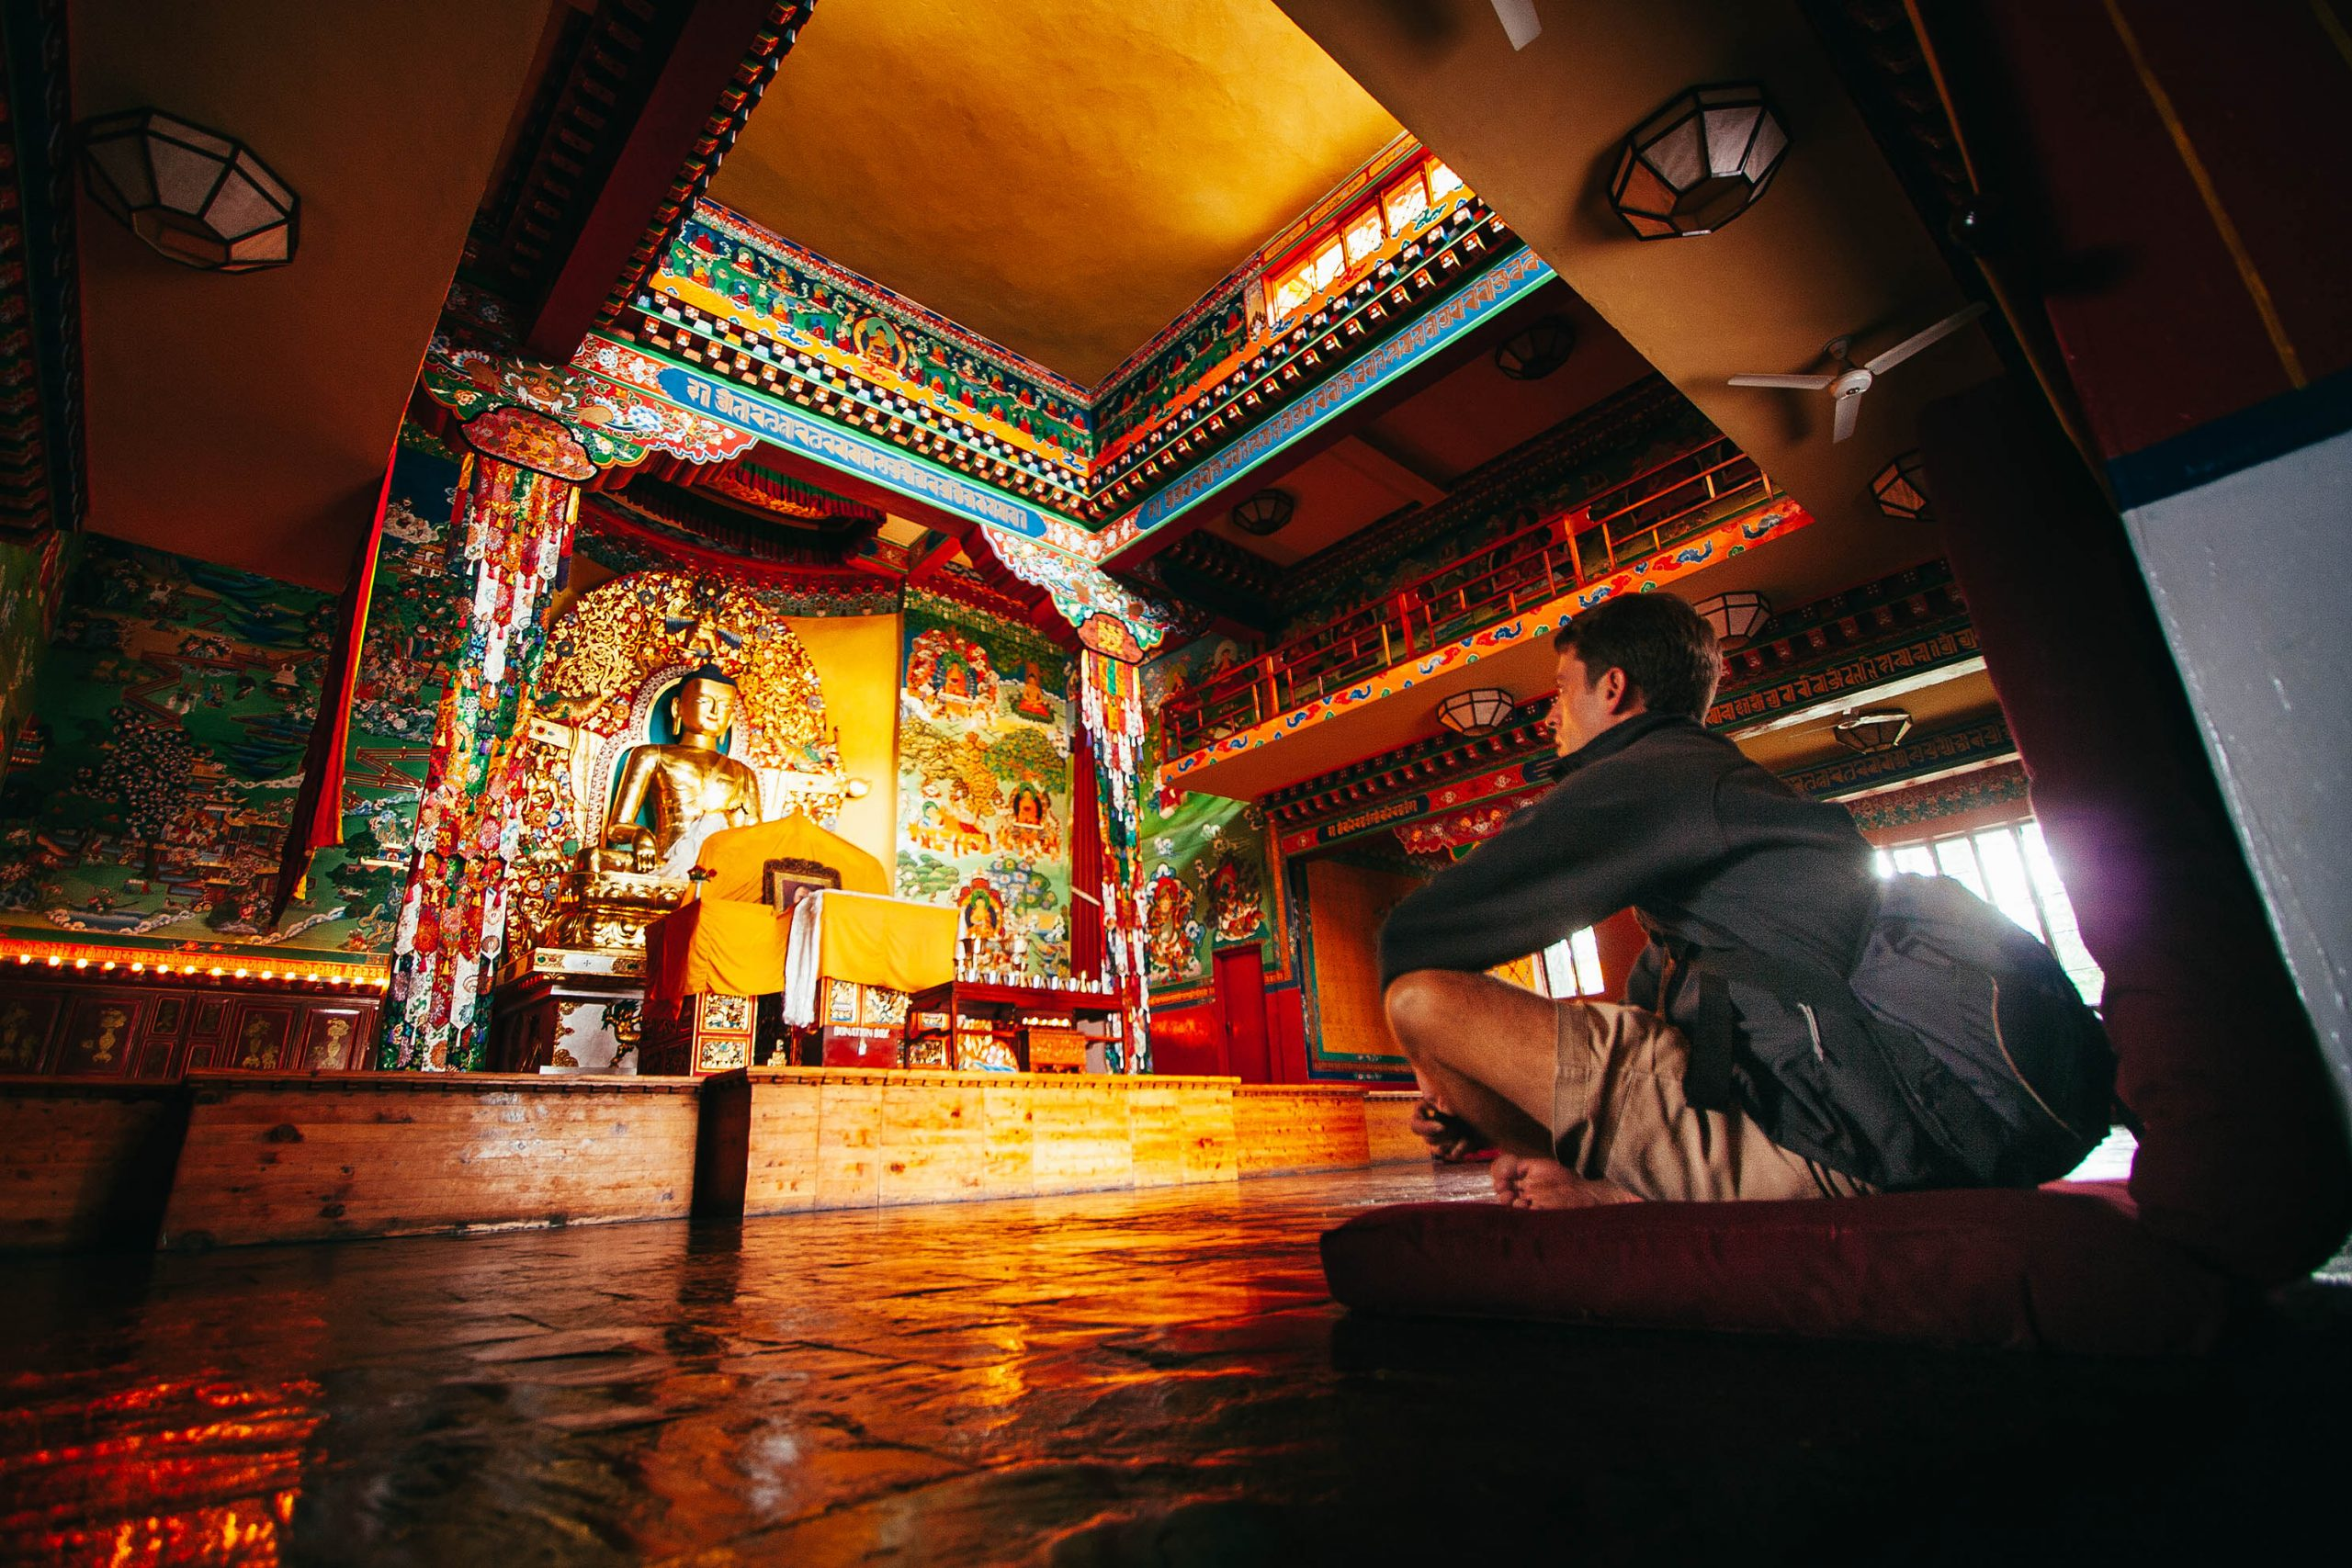 At the Norbulingka Tibetan Buddhist temple in Dharamsala, India